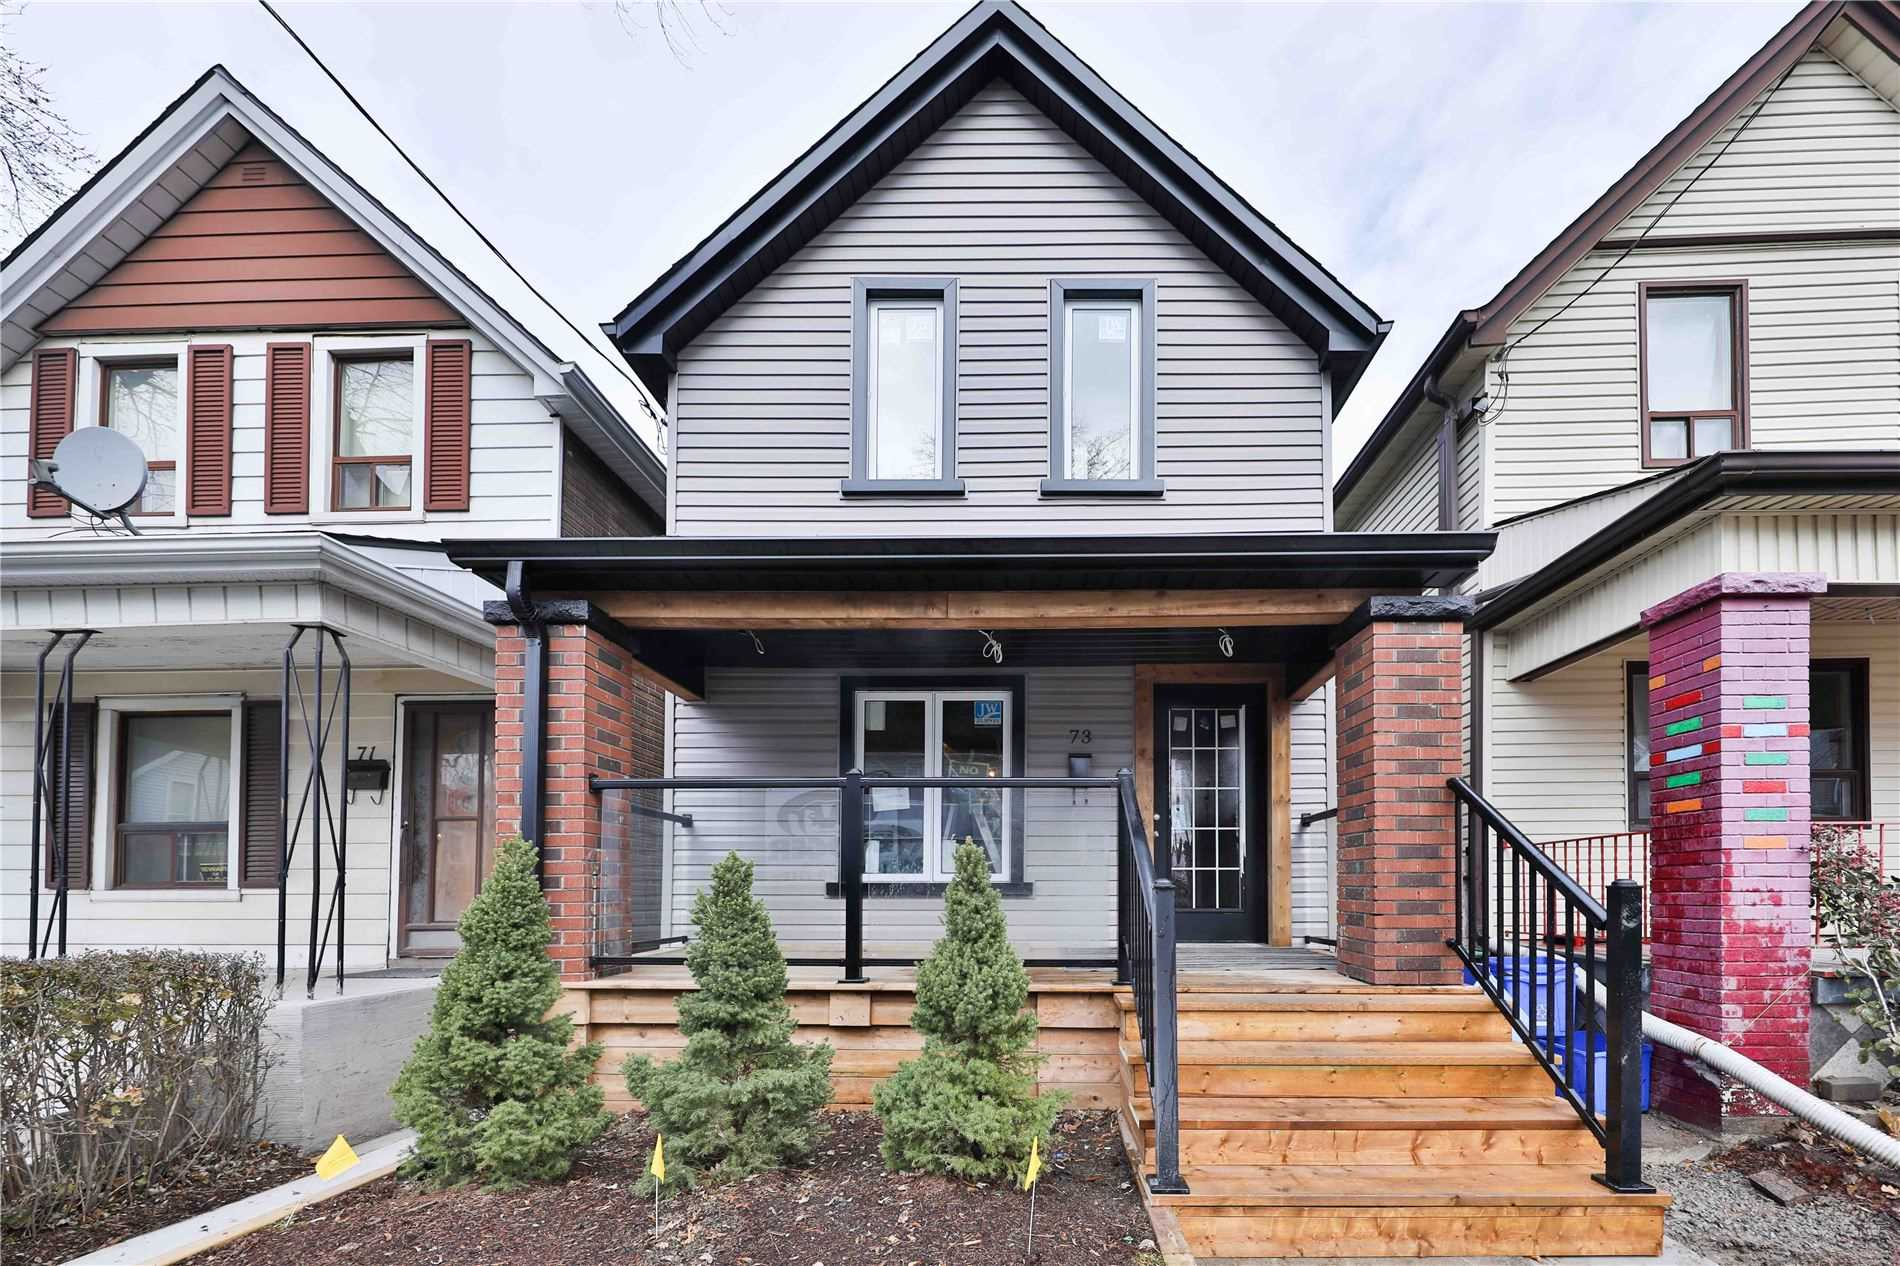 For Sale: 73 Clinton Street, Hamilton, ON | 3 Bed, 2 Bath House for $479888.00. See 18 photos!